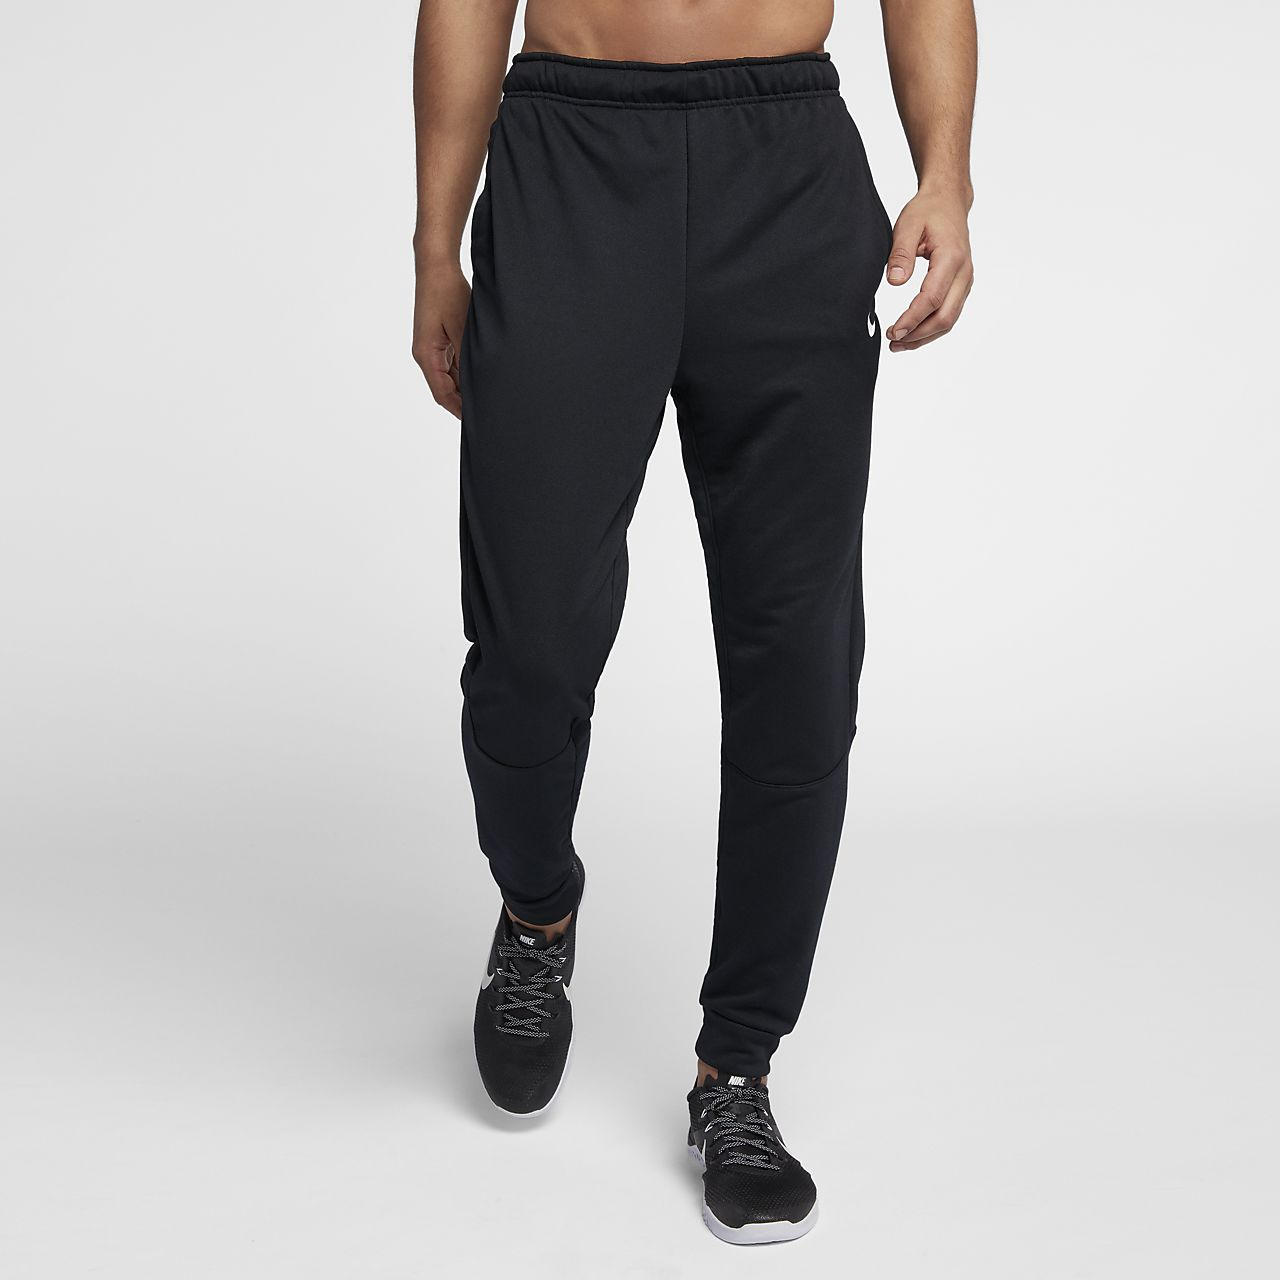 ... Nike Dri-FIT Men's Fleece Training Pants